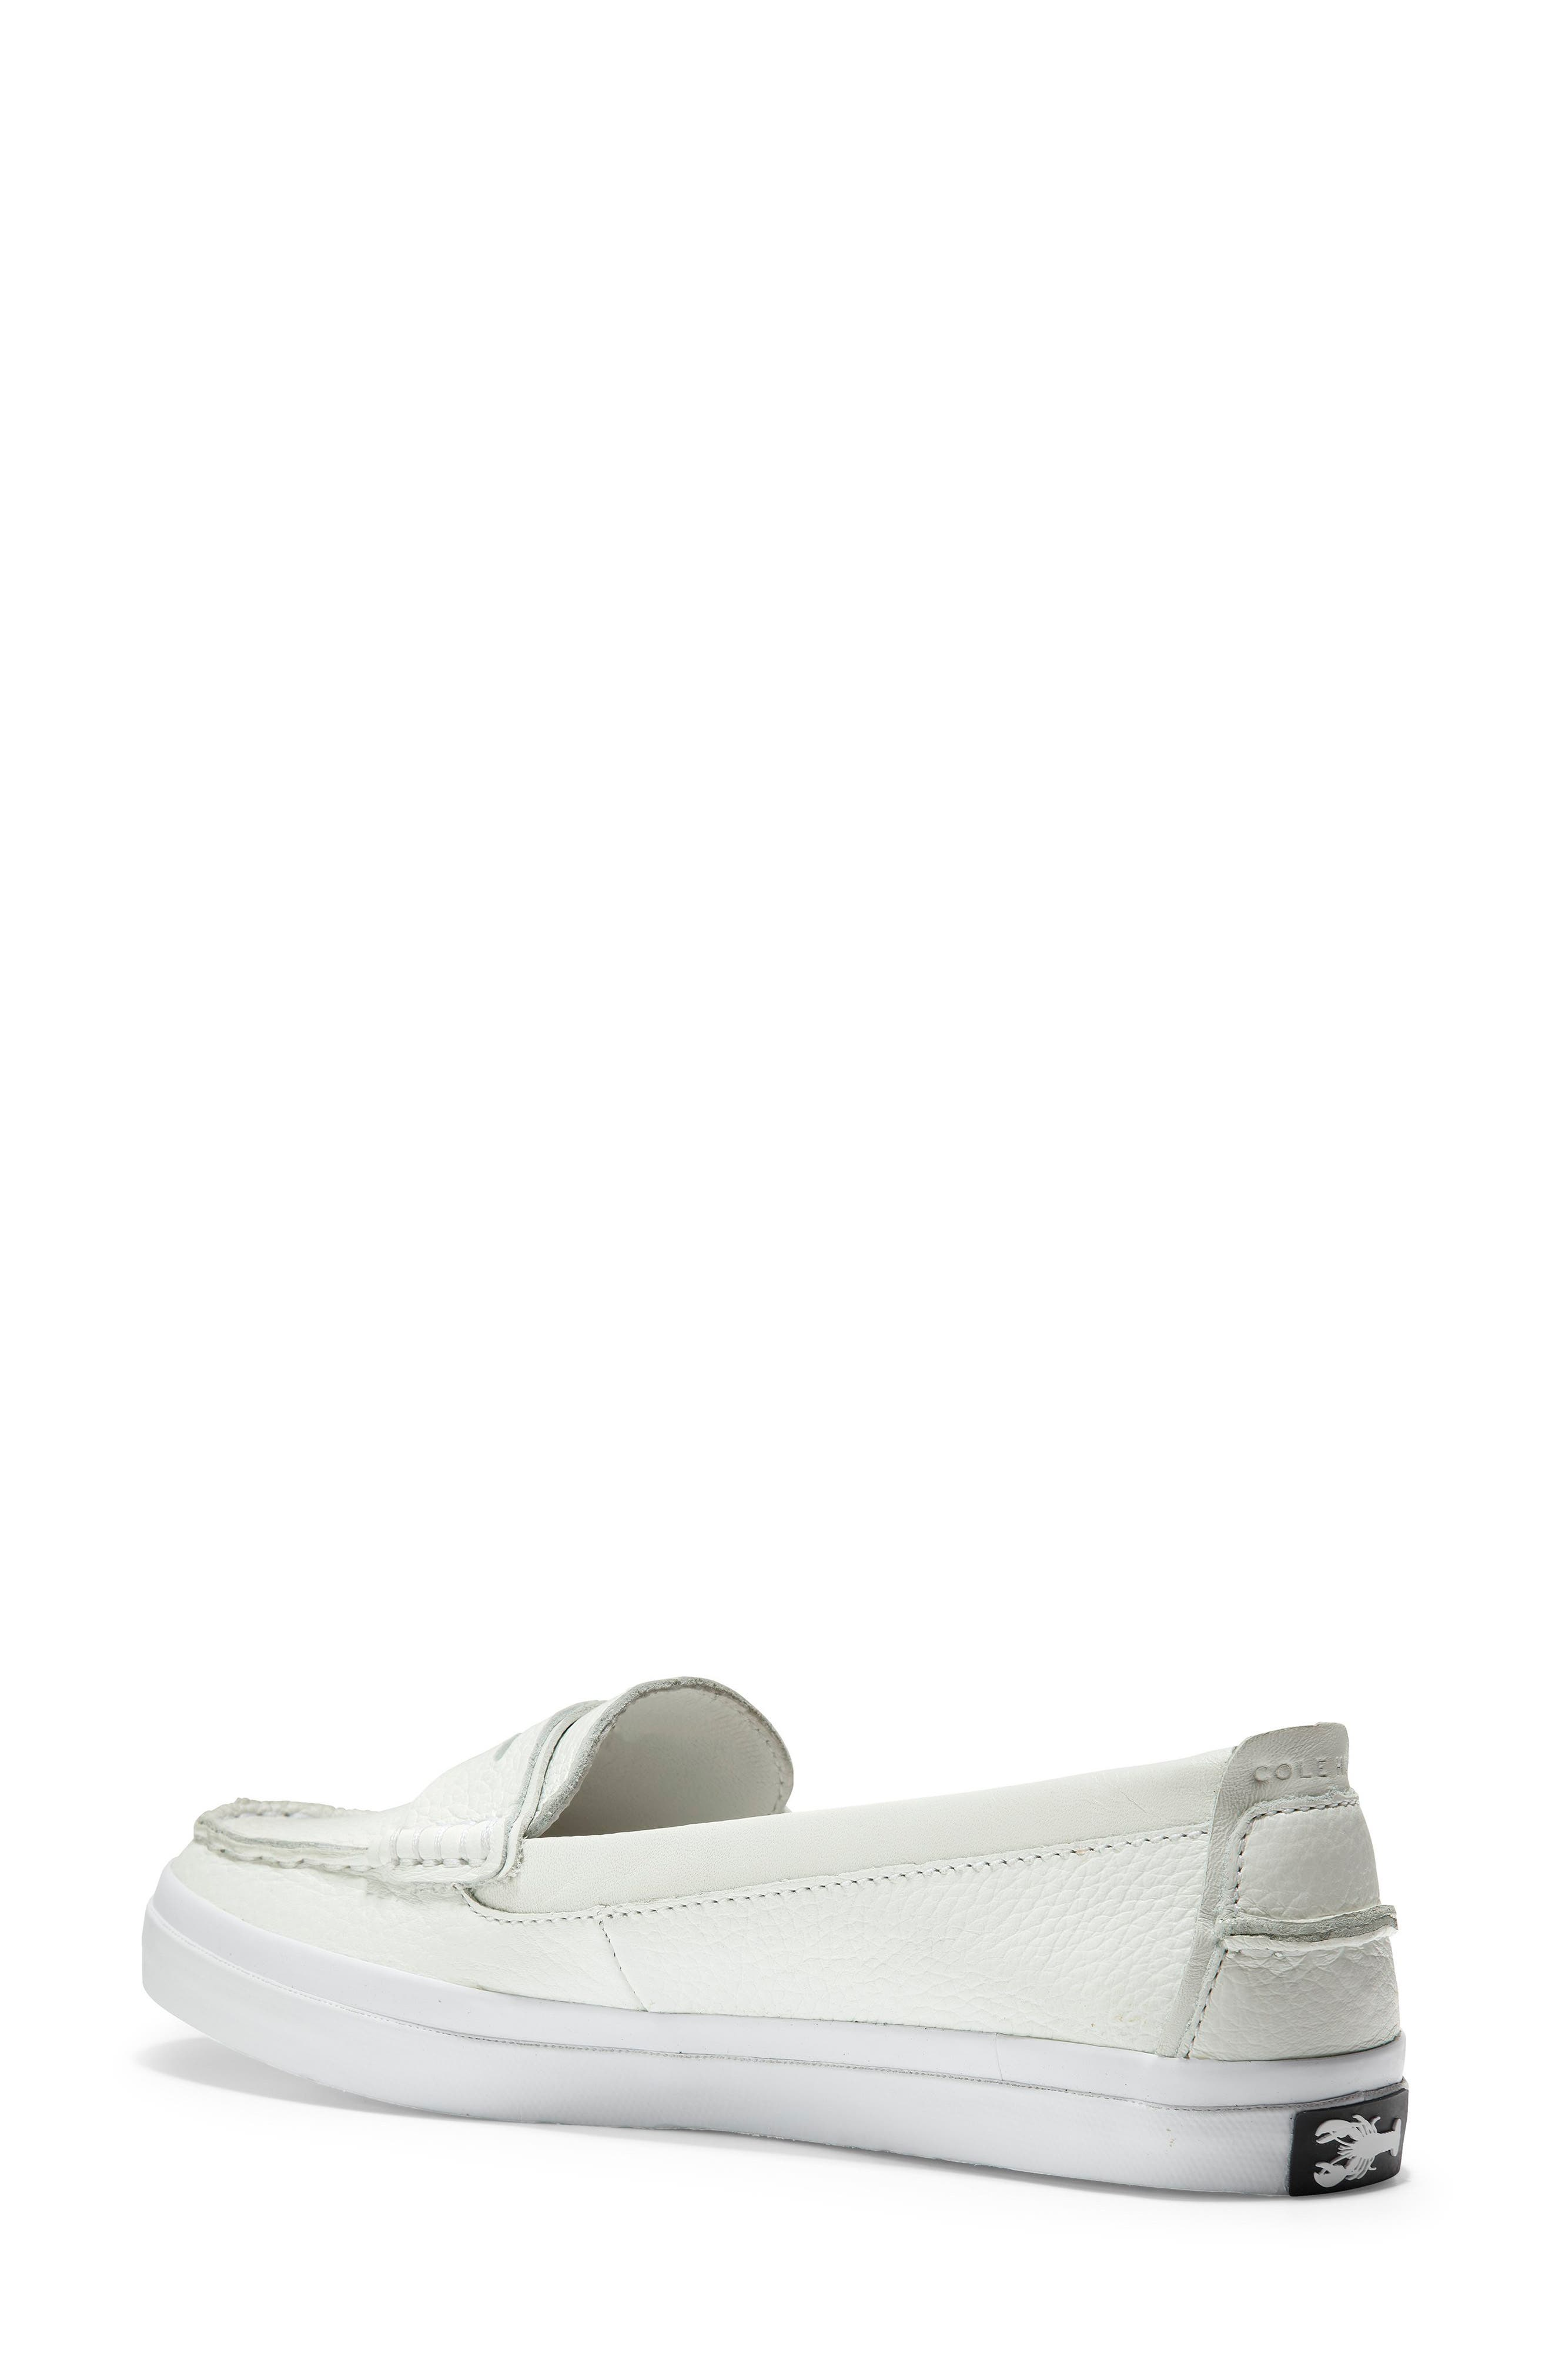 COLE HAAN, Pinch LX Loafer, Alternate thumbnail 2, color, OPTIC WHITE LEATHER